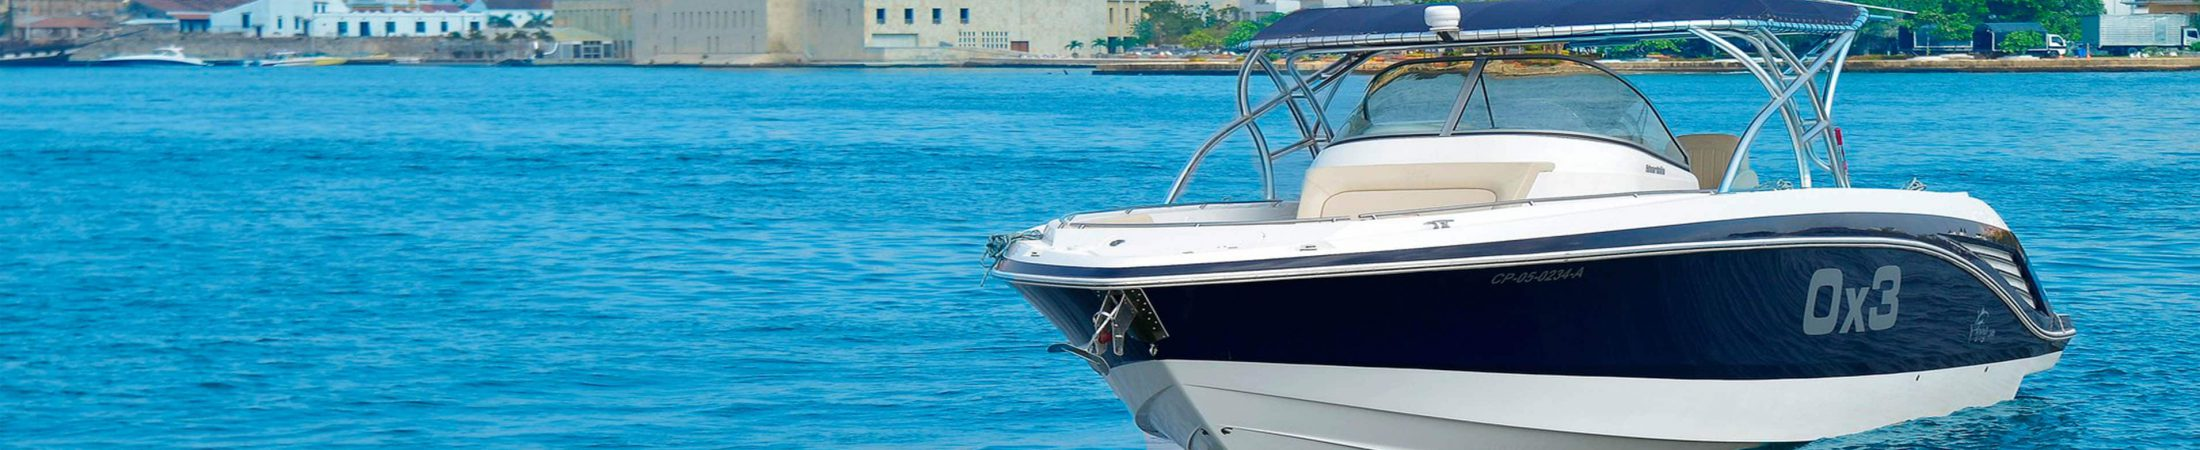 Private Boat Tours Cartagena